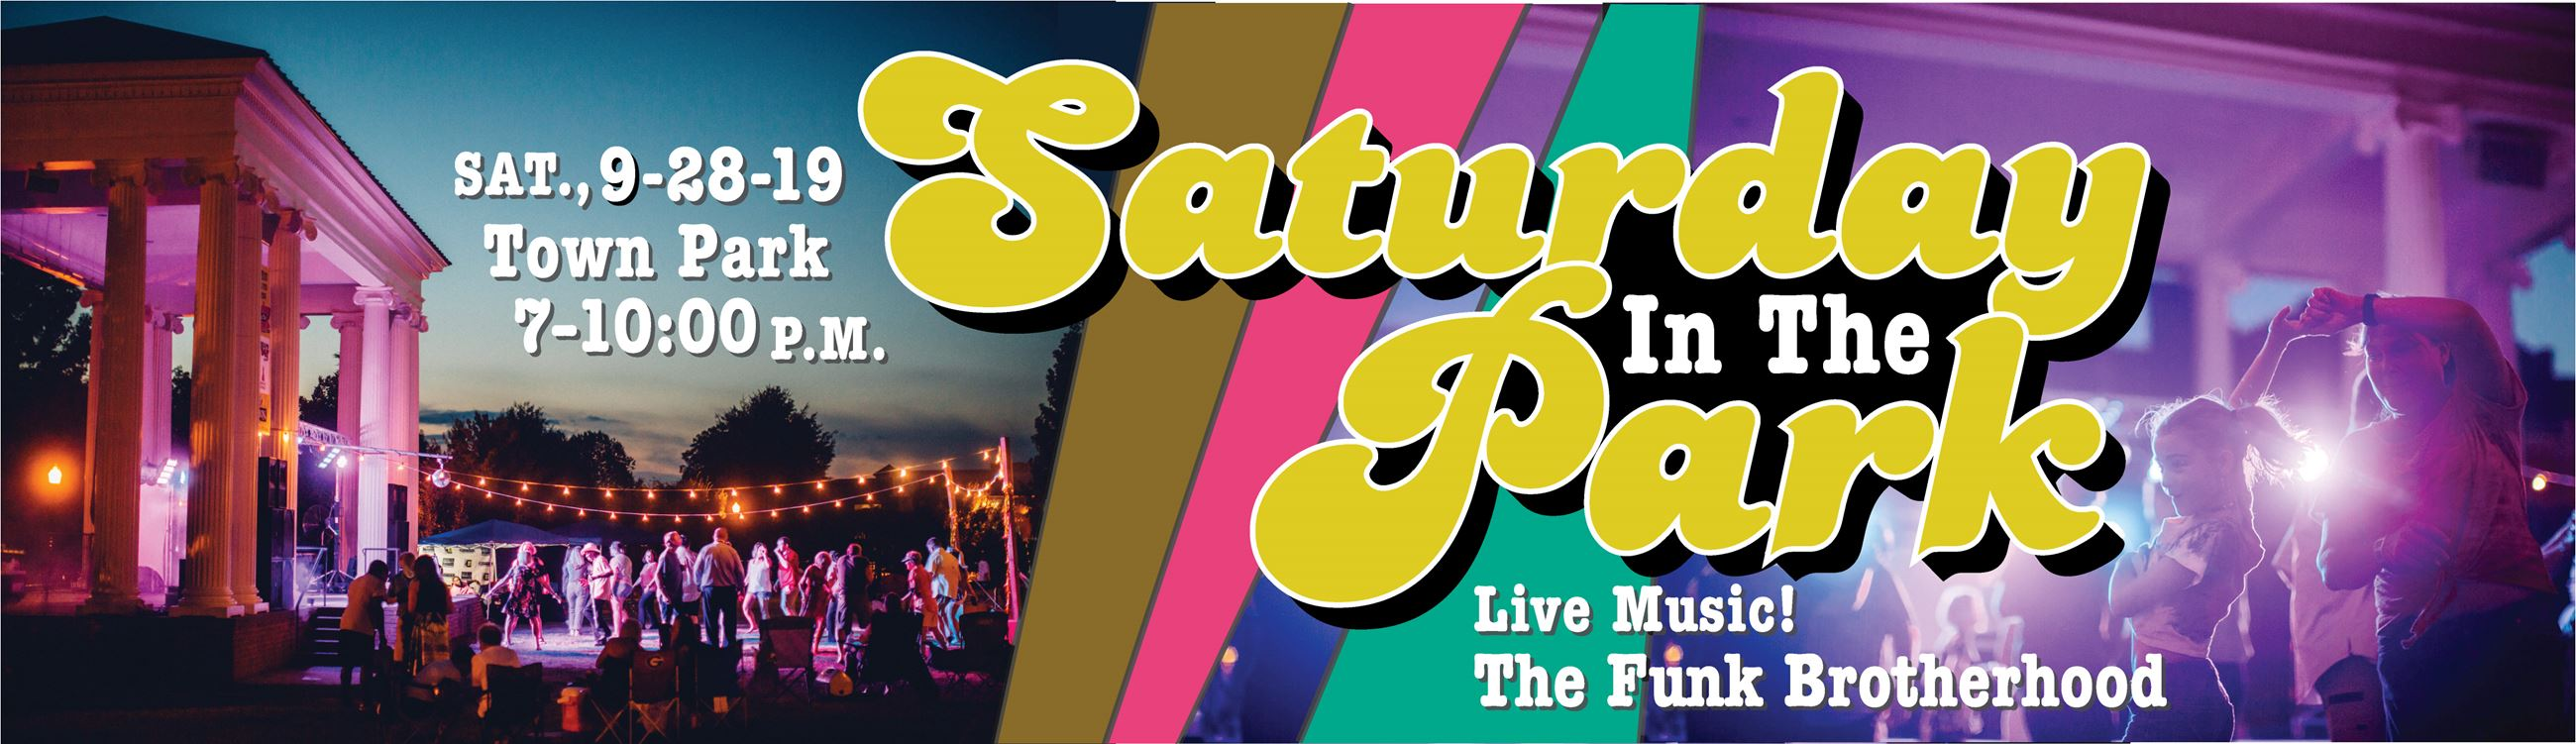 Saturday in the Park dance logo